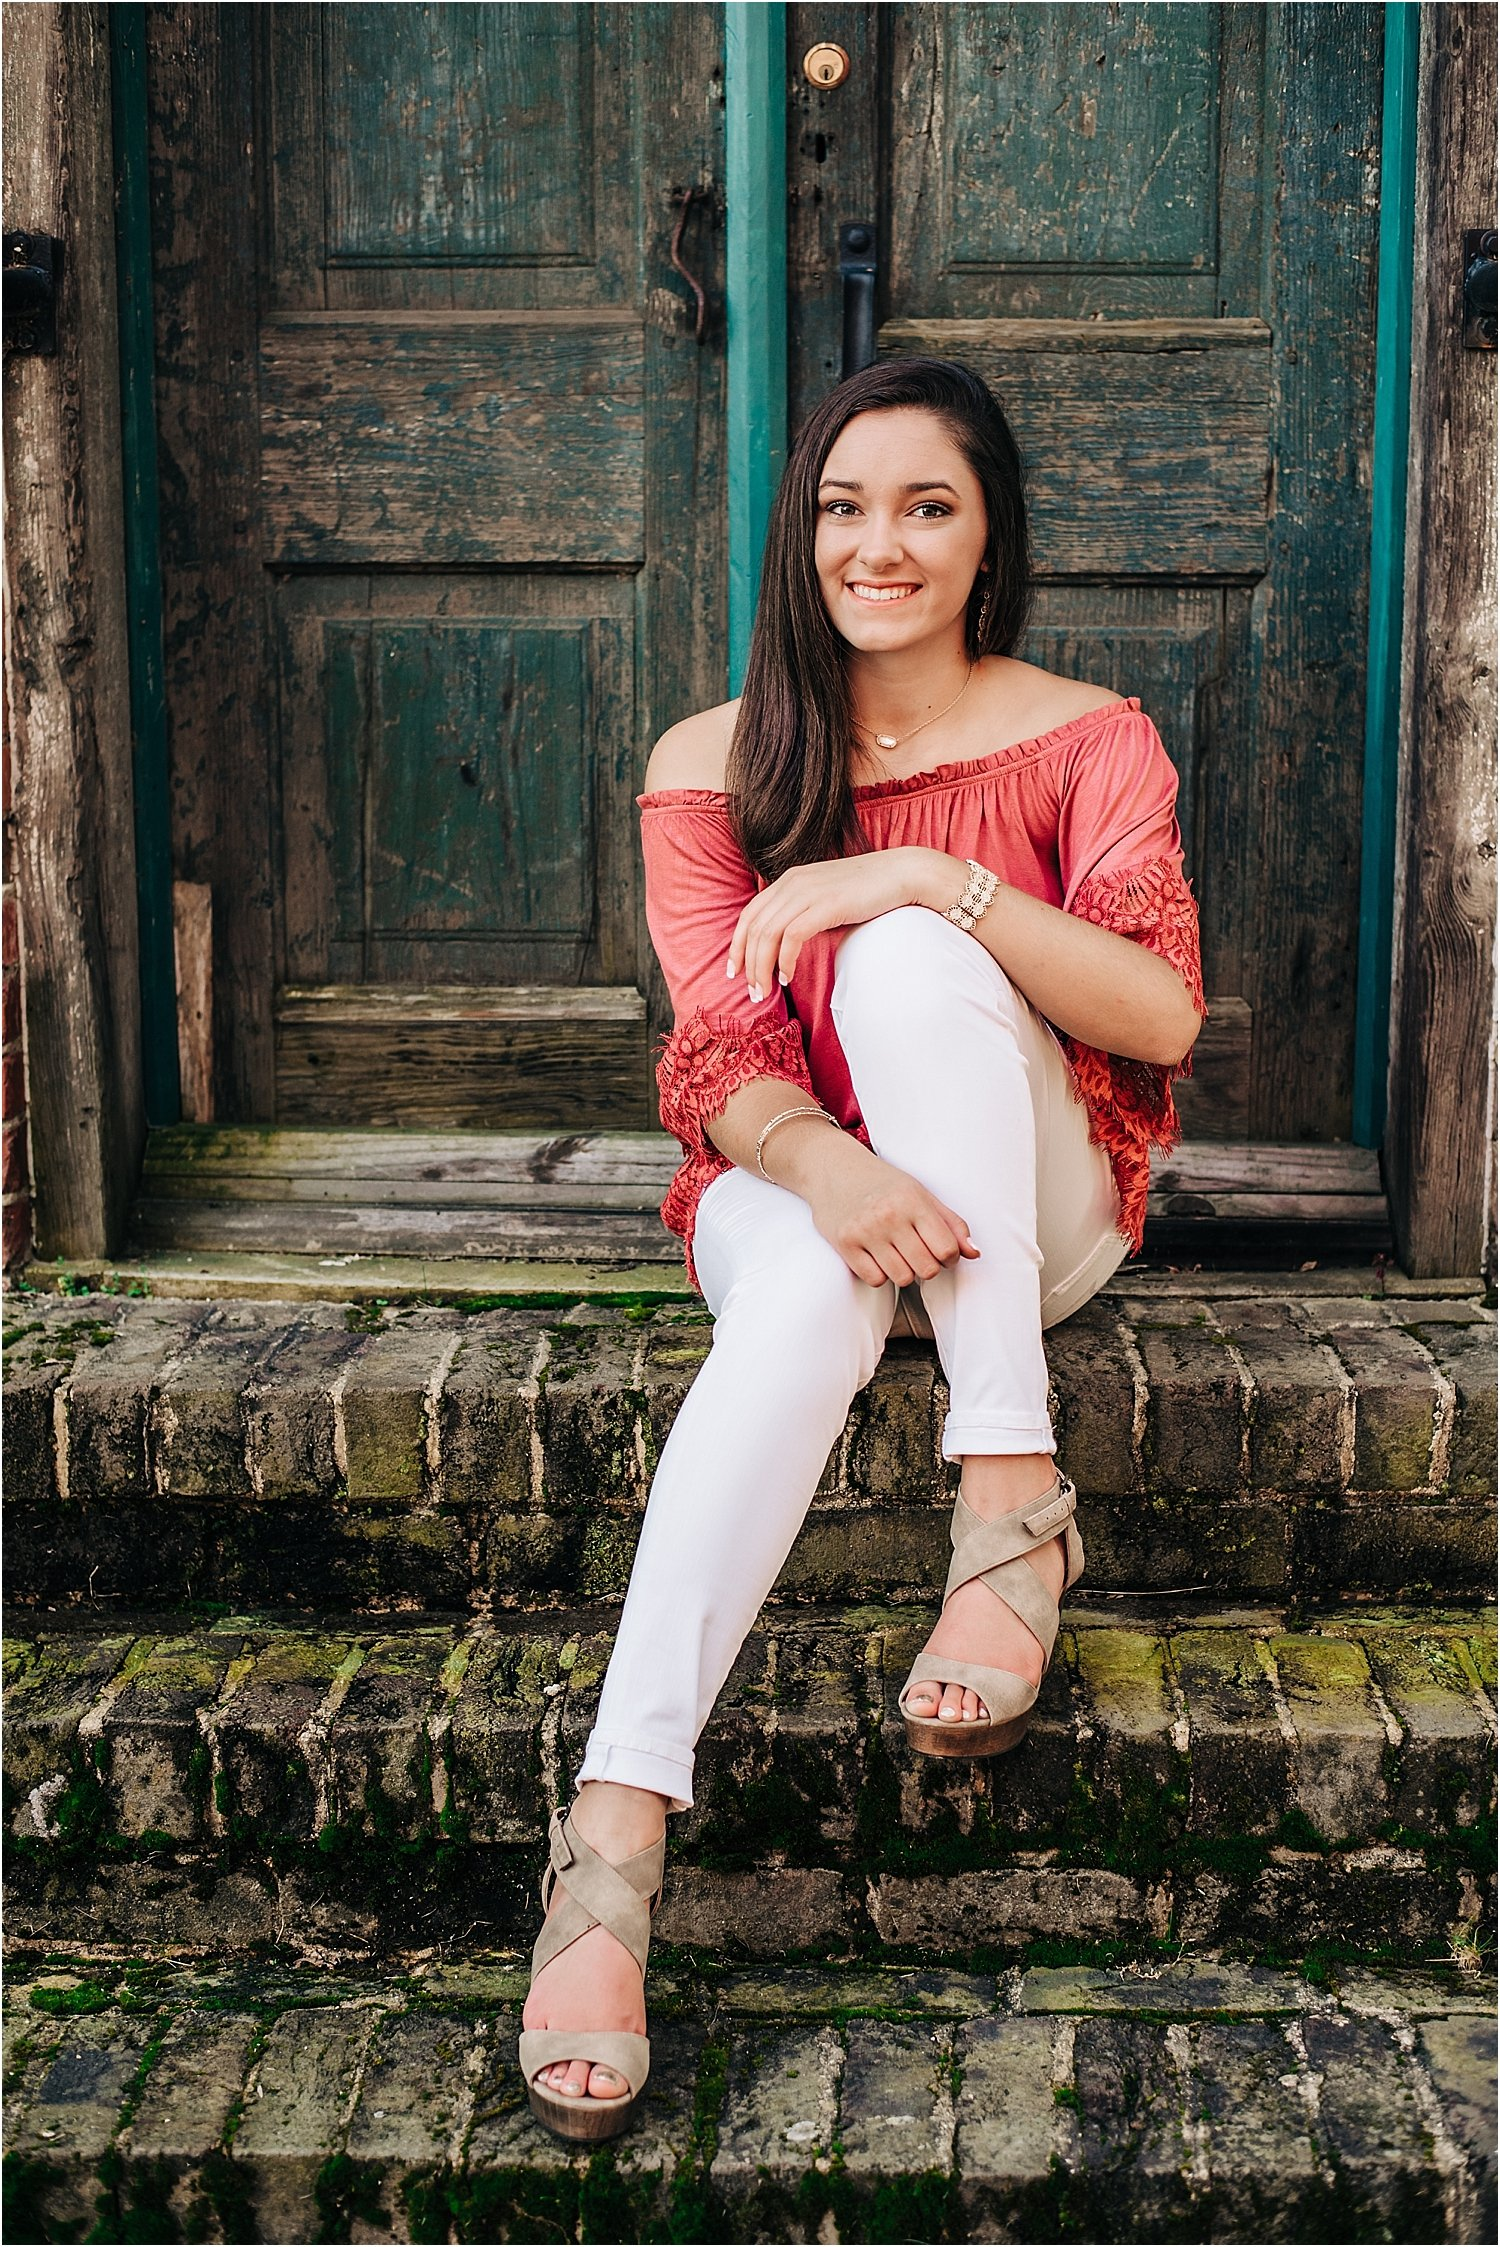 Senior portrait with colorful, rustic backdrop.